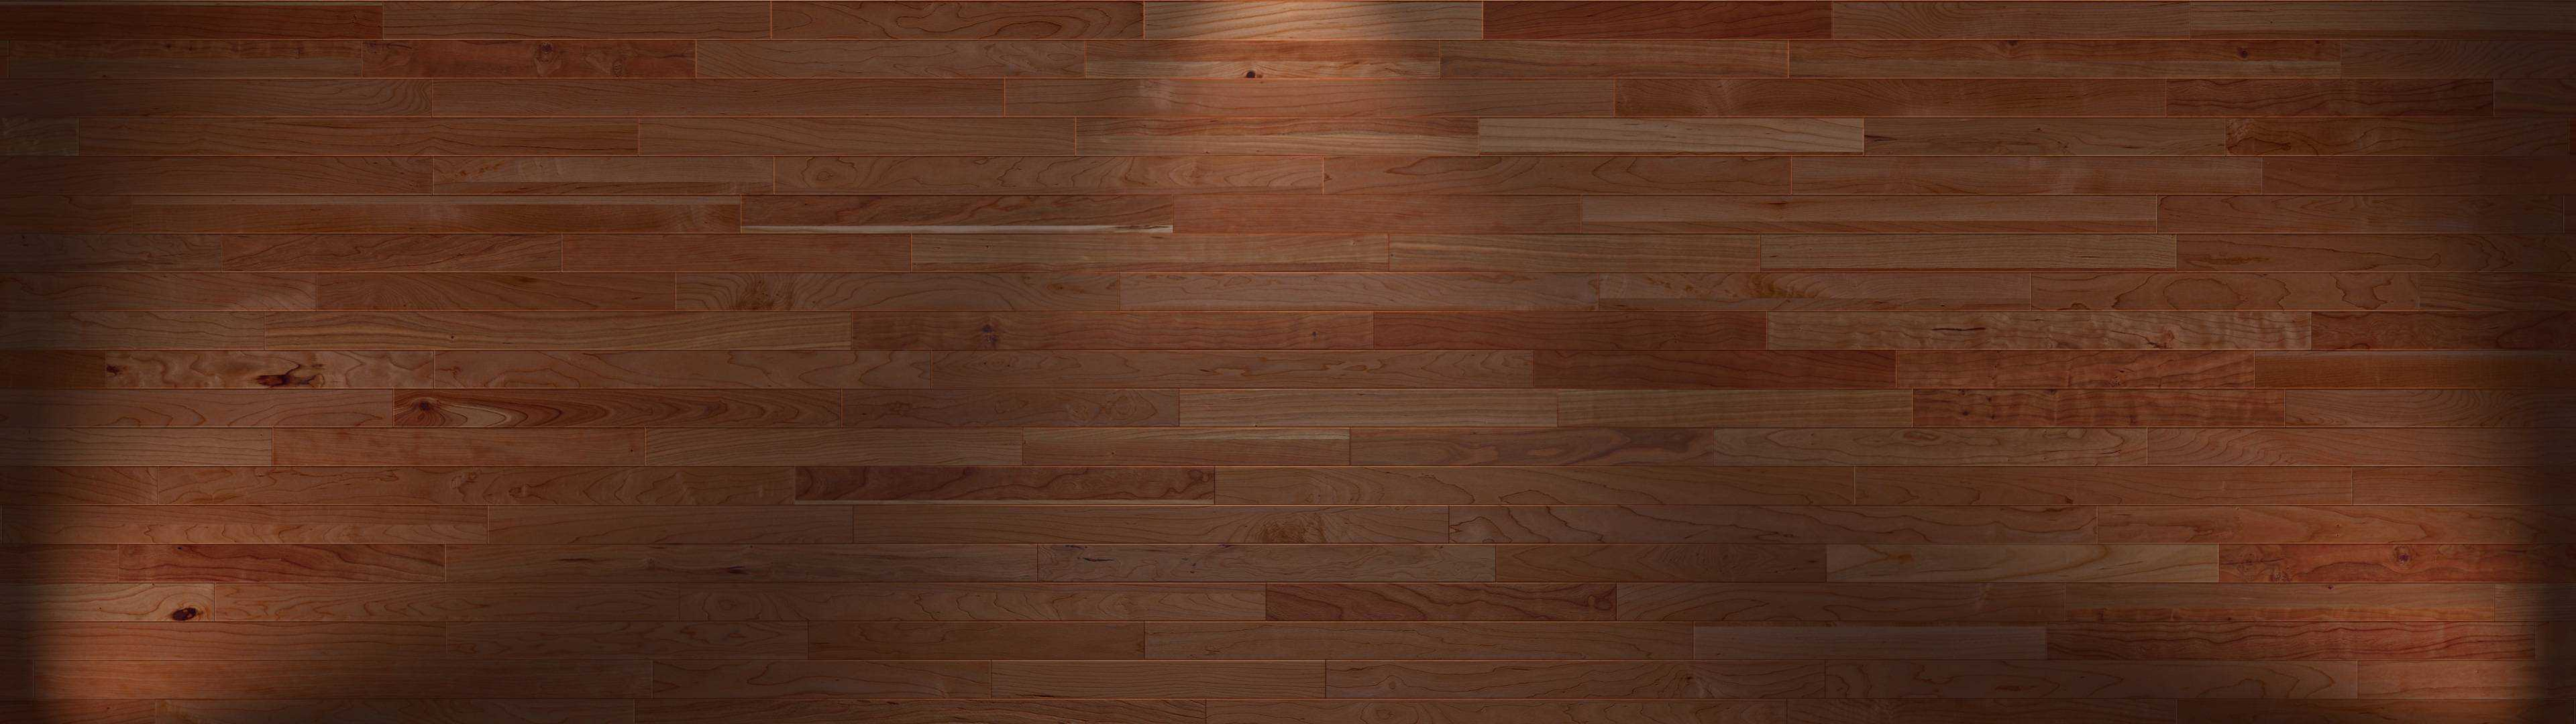 wood texture dual monitor wallpaper